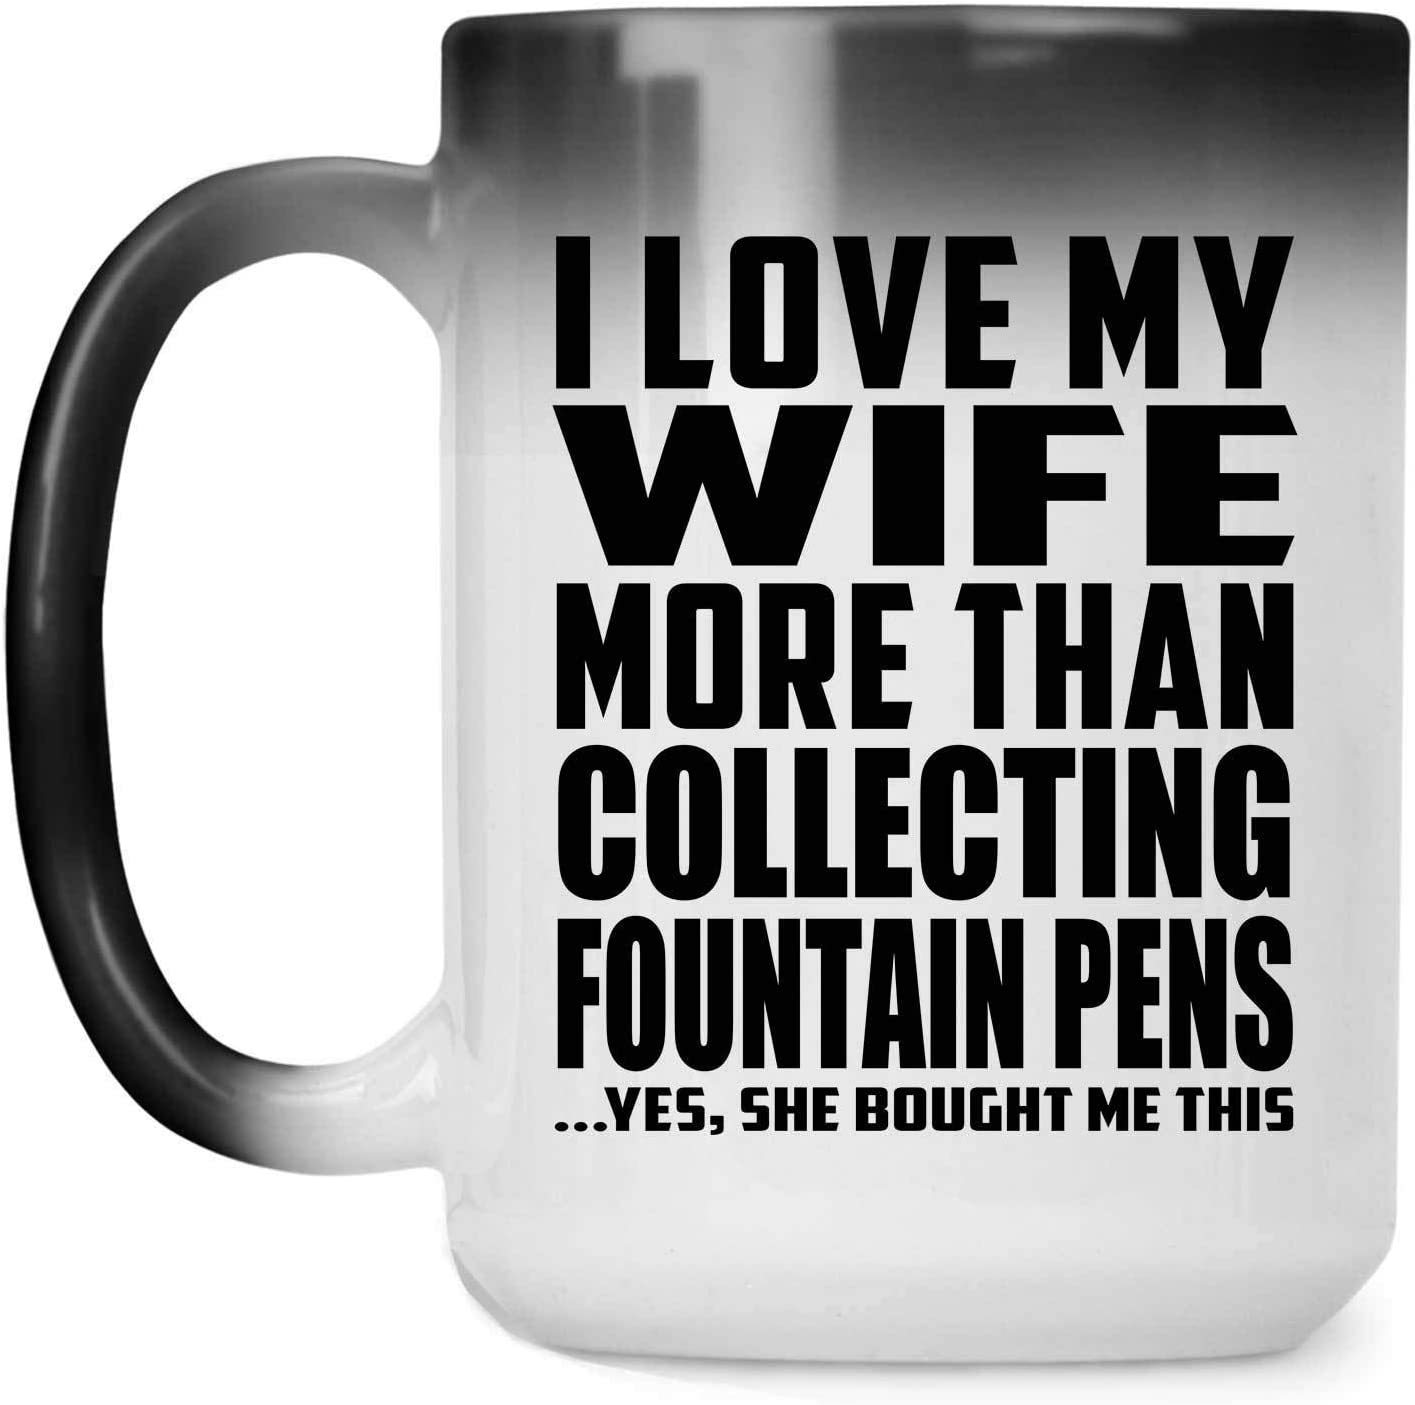 I Love My Wife More Than Collecting Fountain Pens - 15oz Color Changing Mug Magic Tea-Cup Heat Sensitive - Idea for Husband Him Men Man He from Wife Birthday Christmas Thanksgiving Anniversary